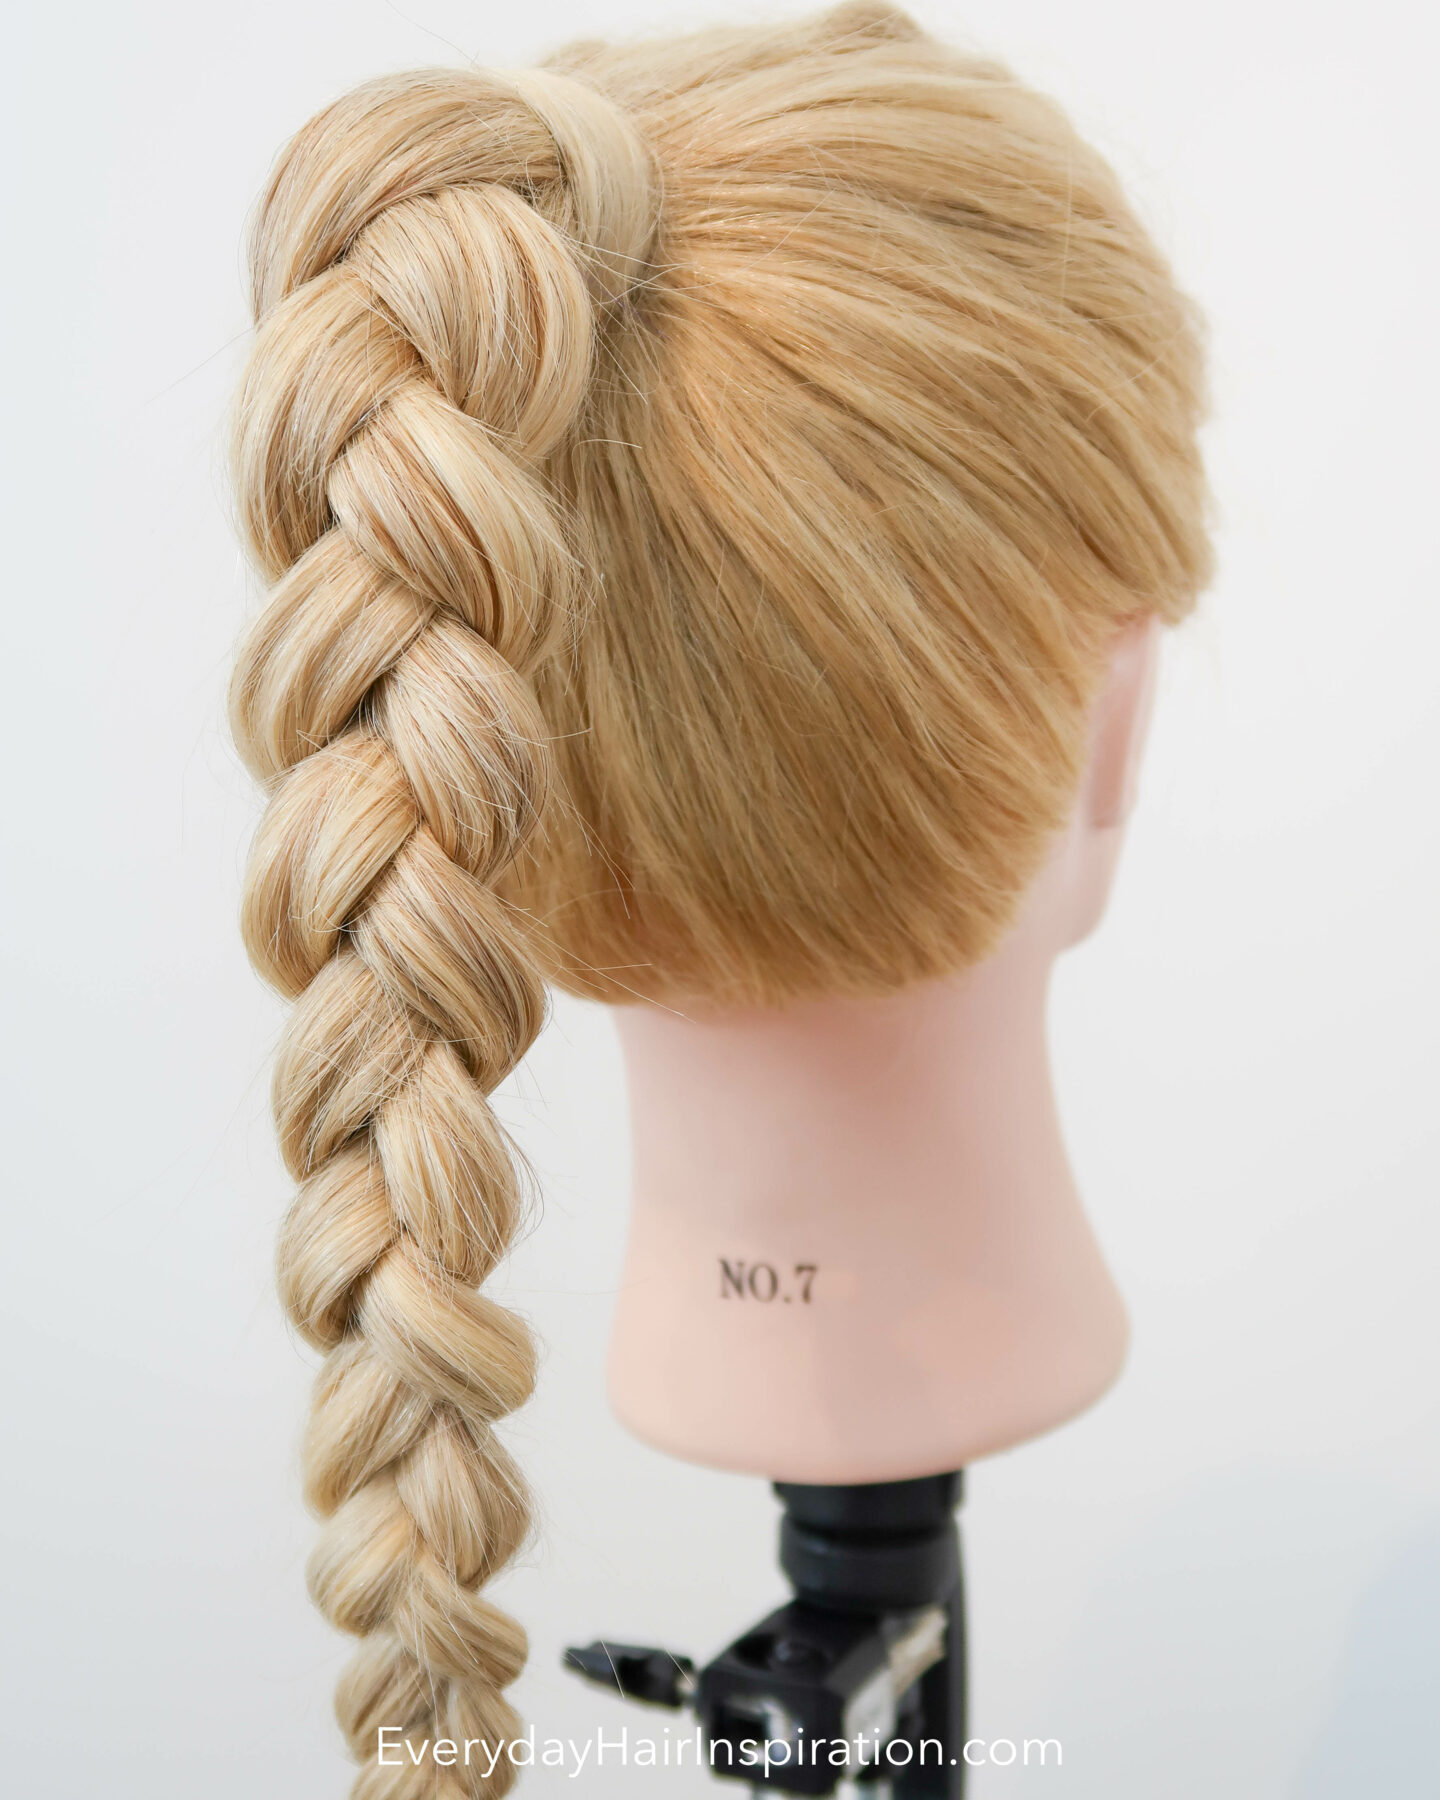 Blonde hairdresser doll seen from the back at an angle, with a high ponytail in the hair, with a 3 strand braid, made out of elastics and no braiding.